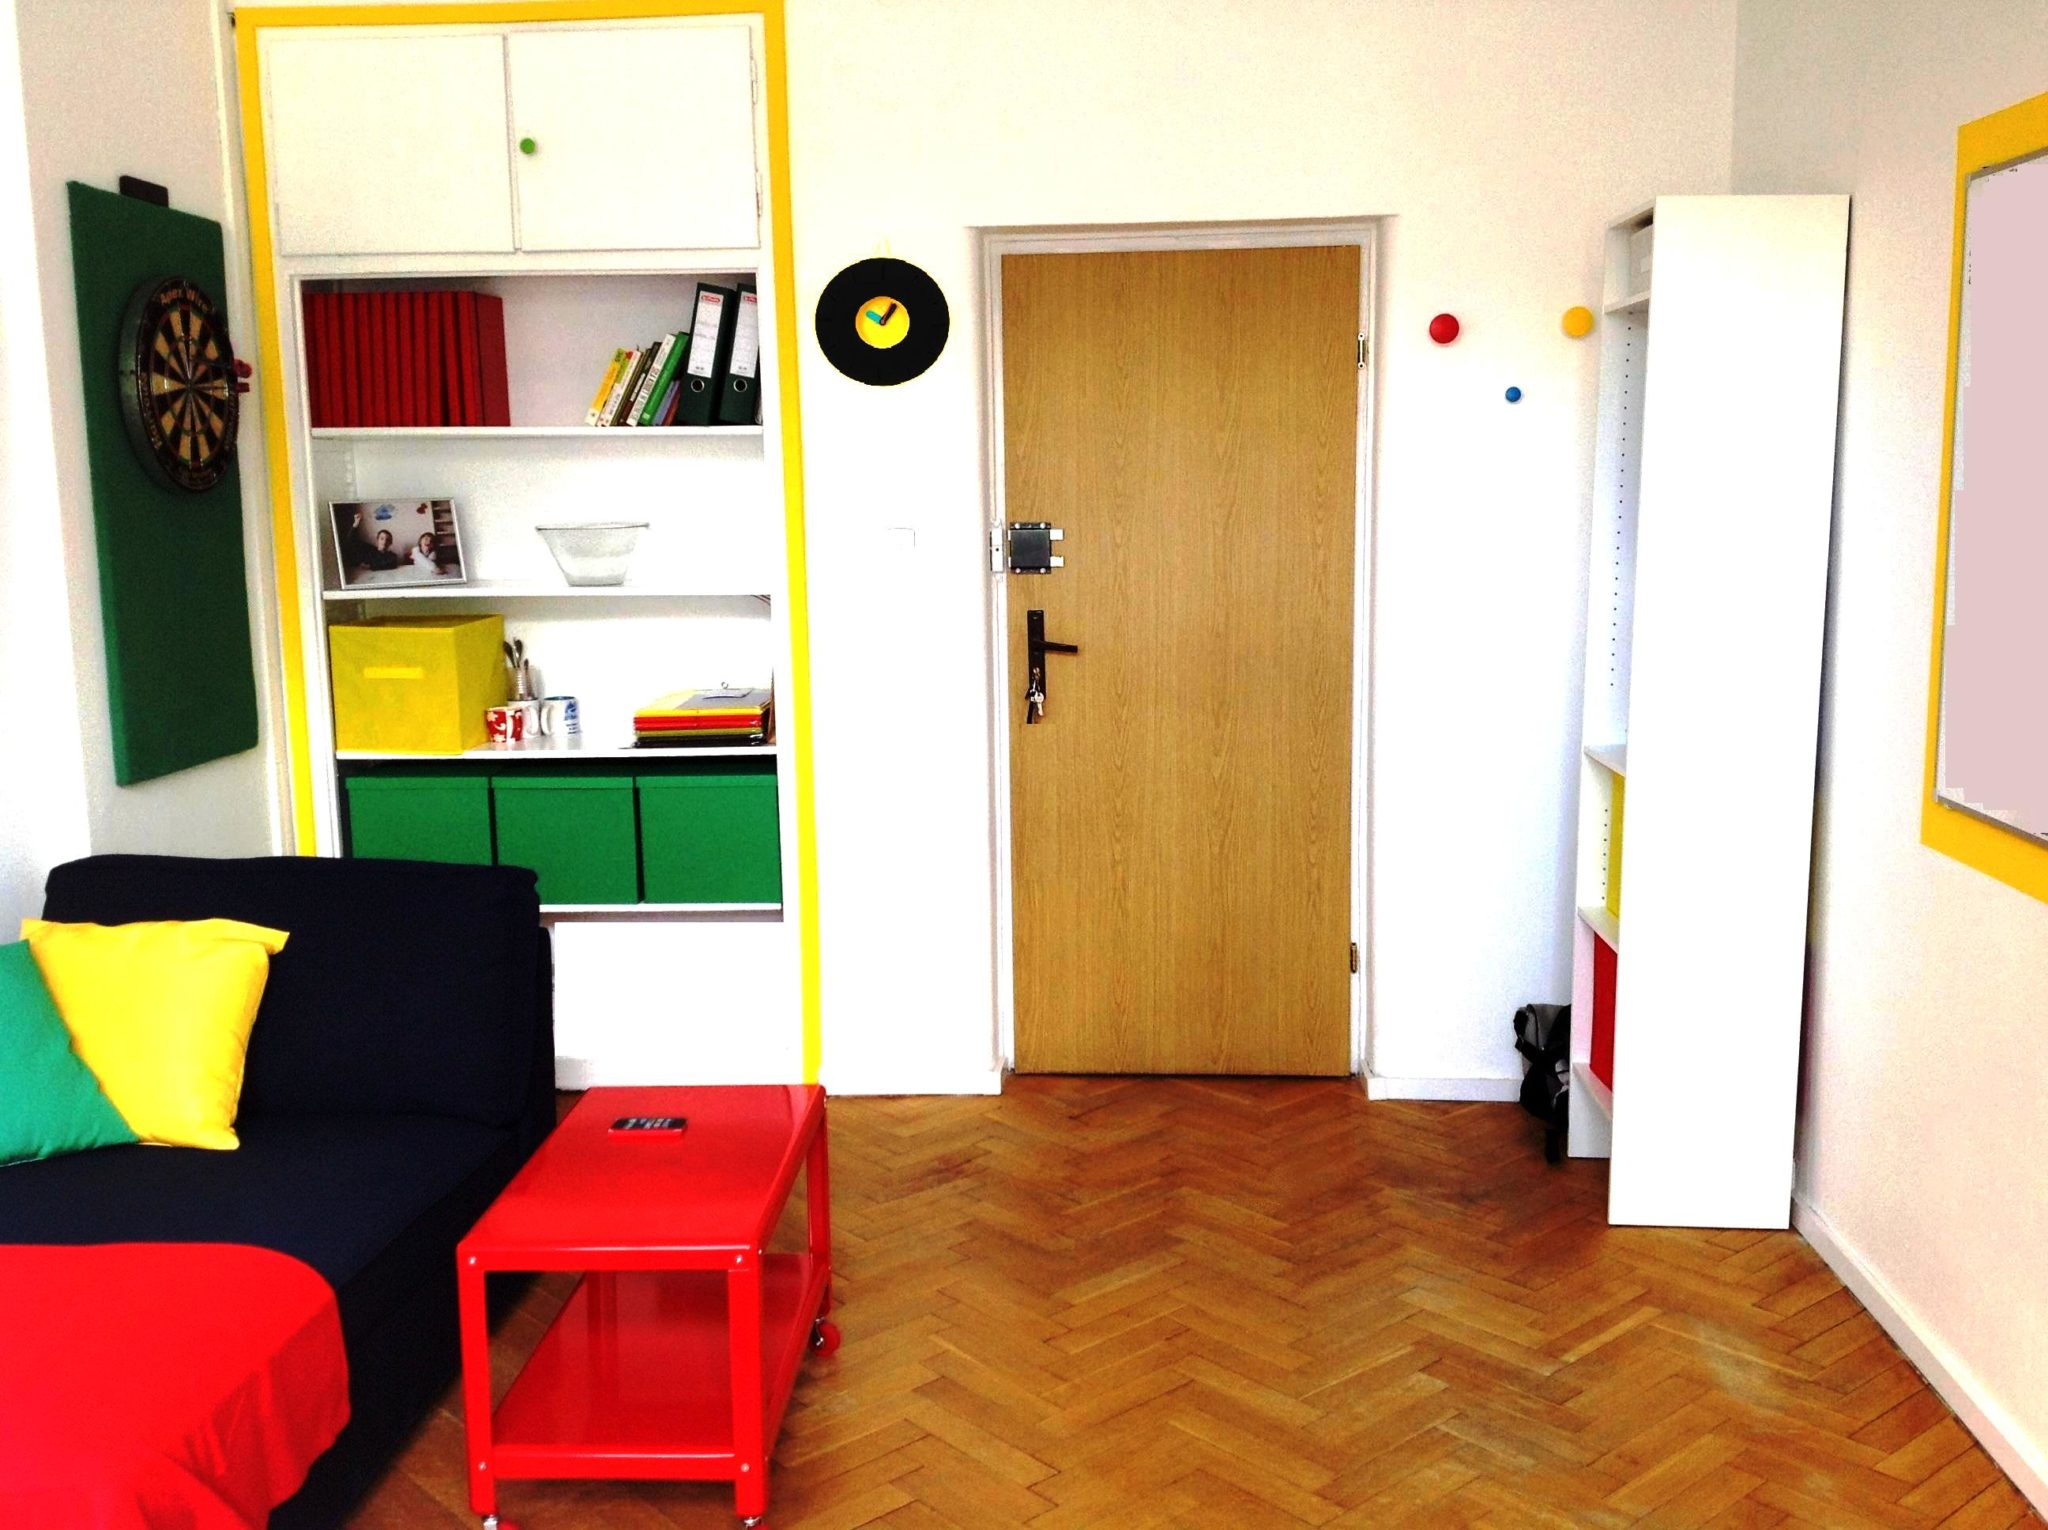 15 projekt wnetrza male kolorowe biuro interior design small colorful office google style forelementspl